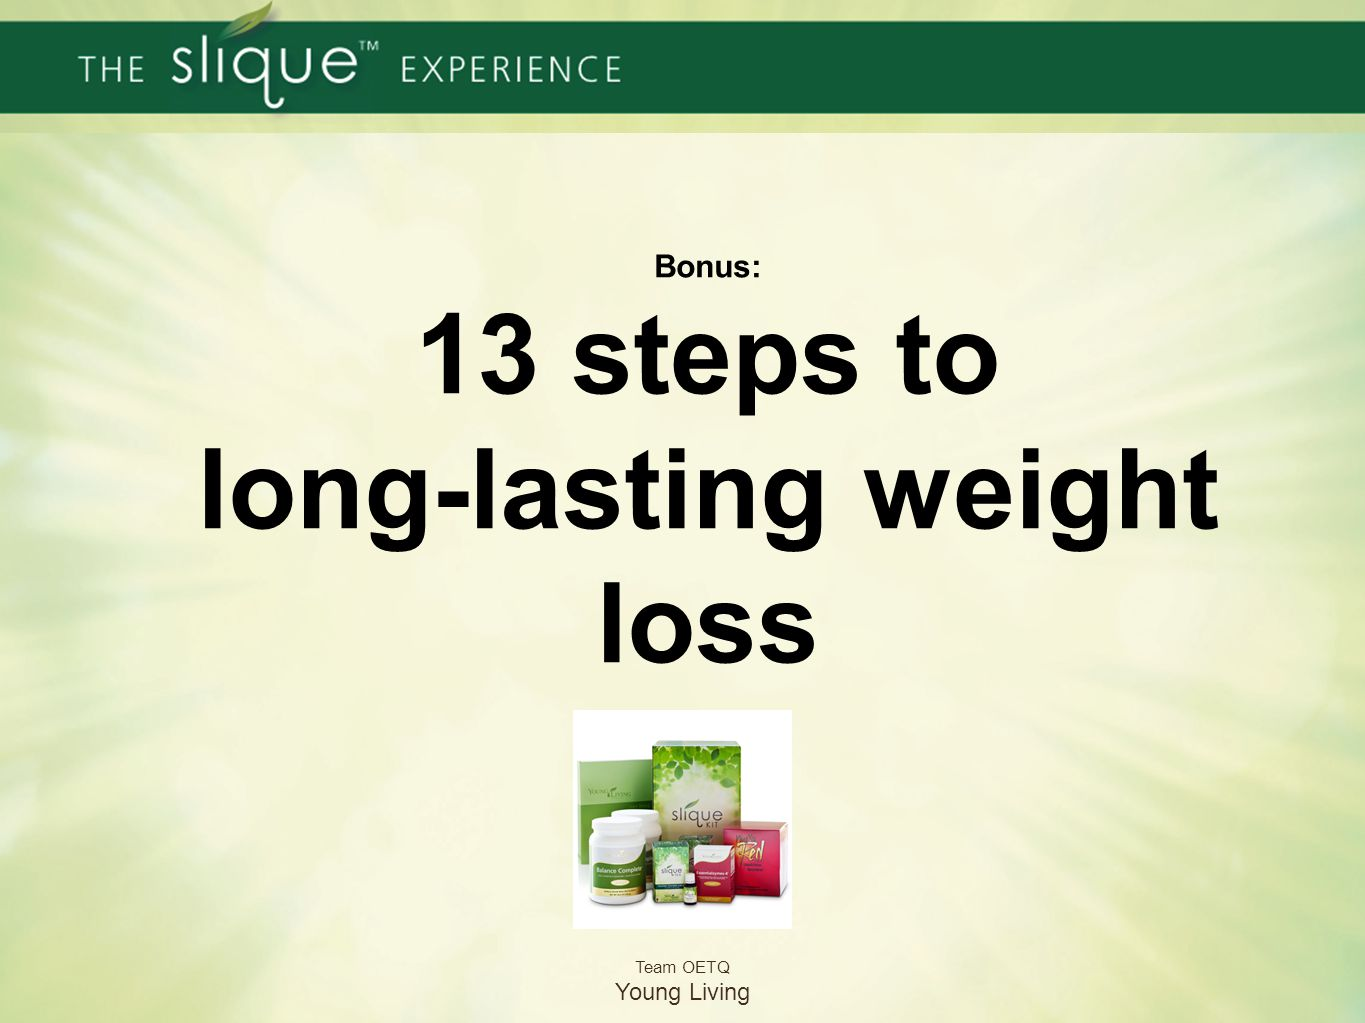 Bonus: 13 steps to long-lasting weight loss